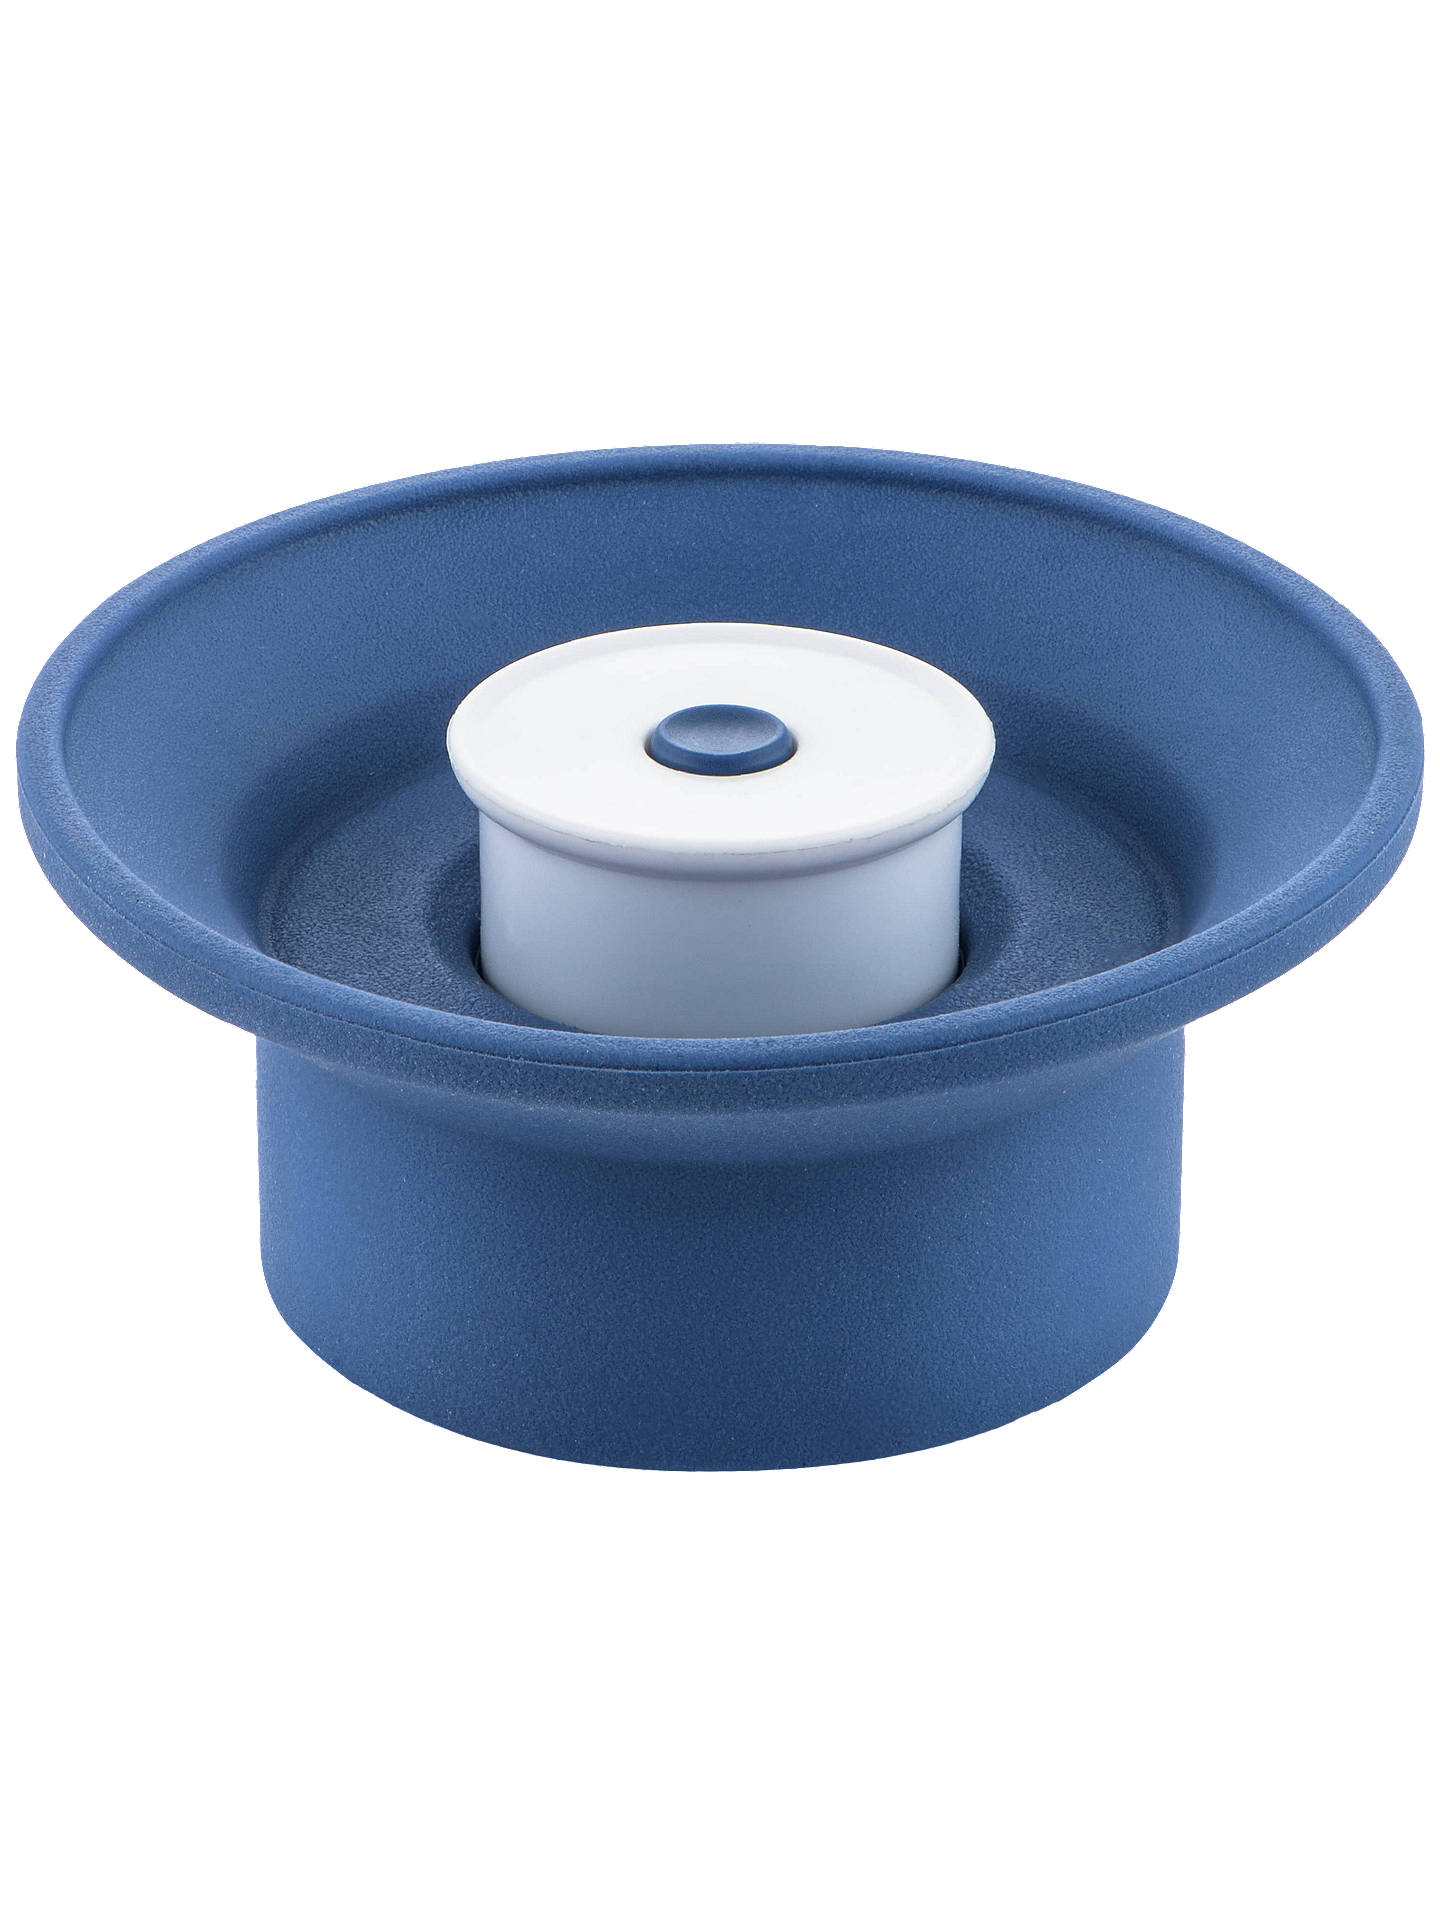 Buy Dopper Drinks Bottle Sports Cap Online At Johnlewis